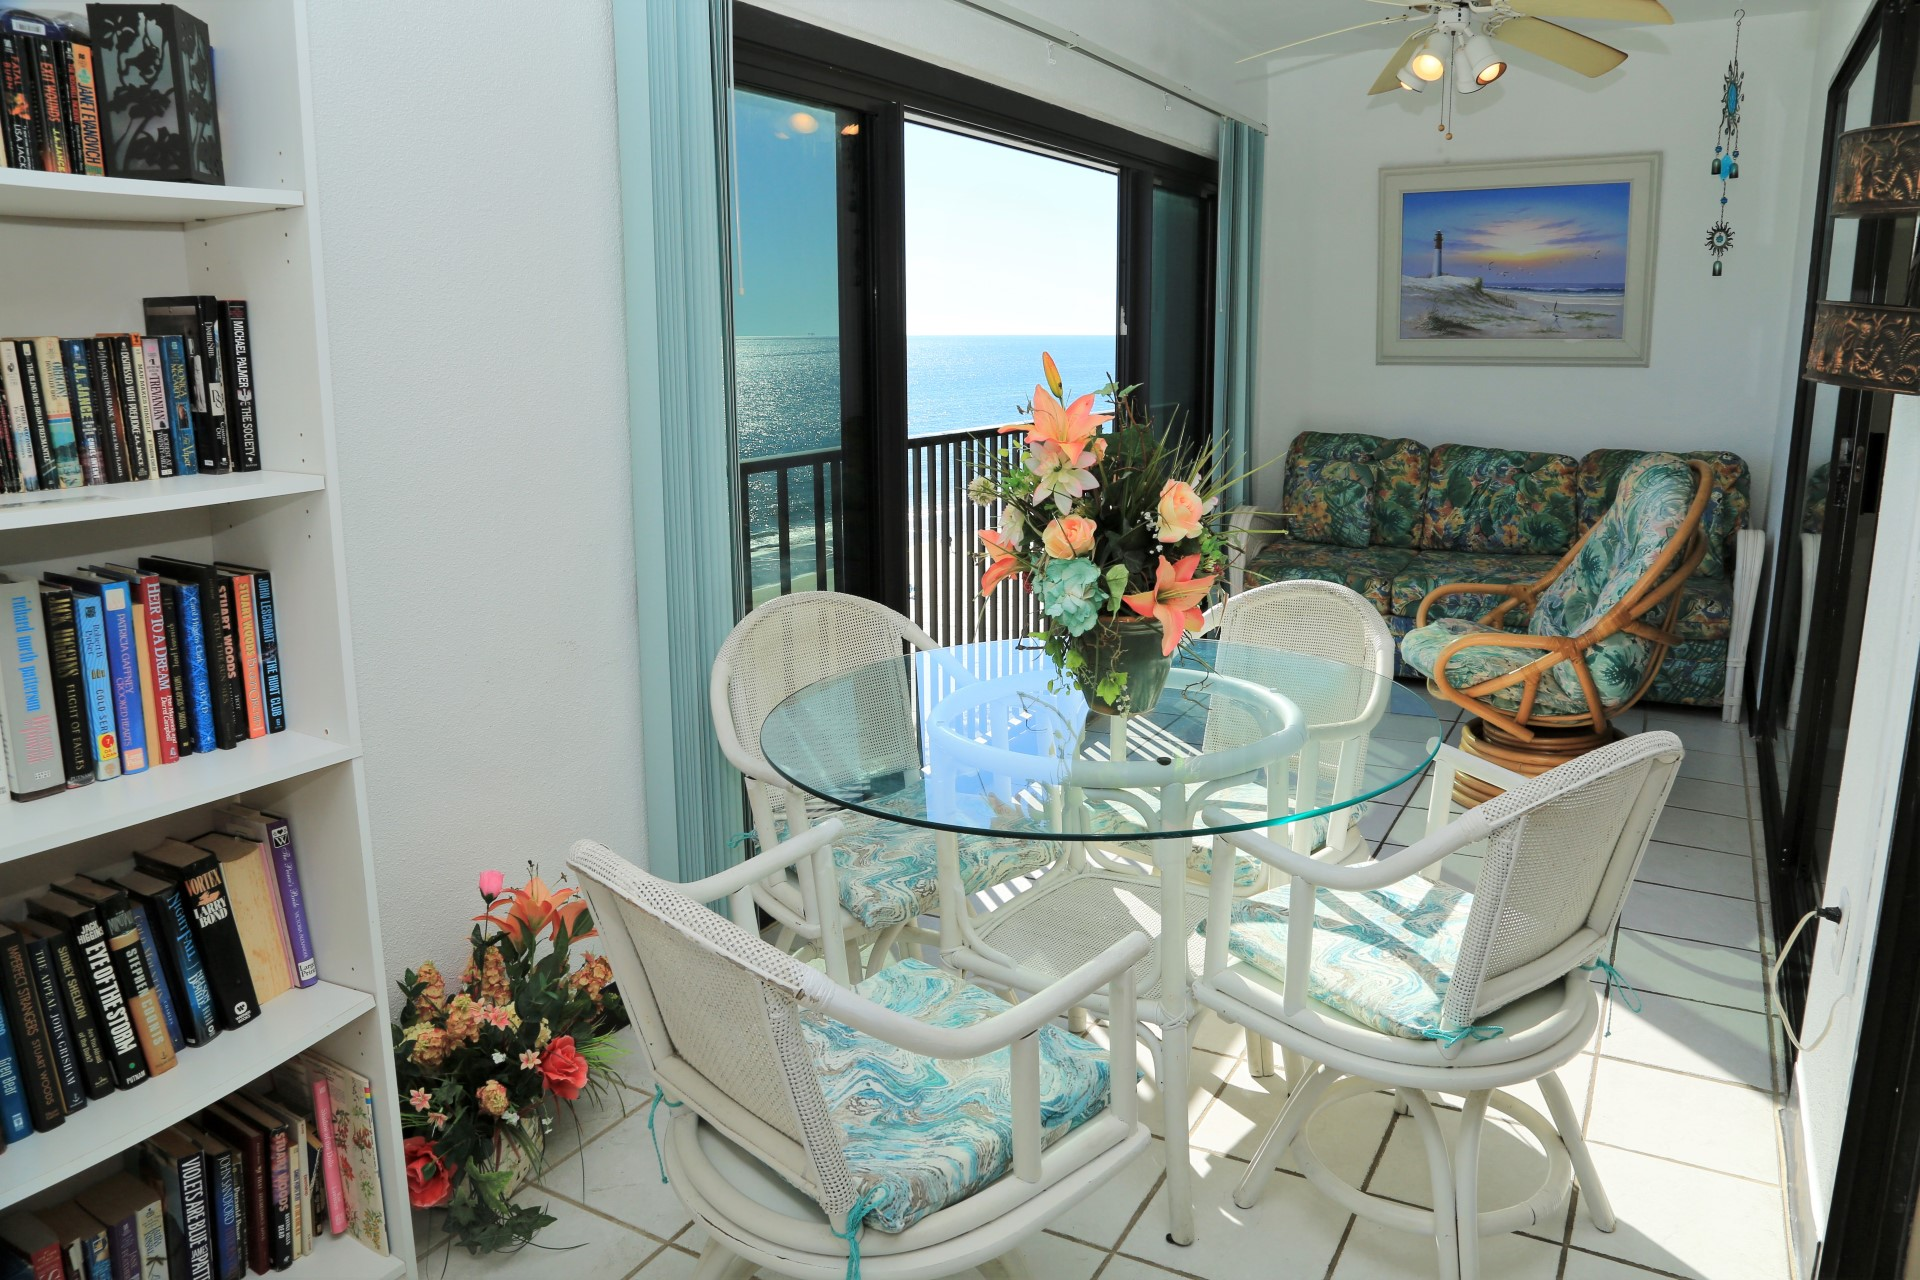 Ample seating available to lounge with views of the shorelun